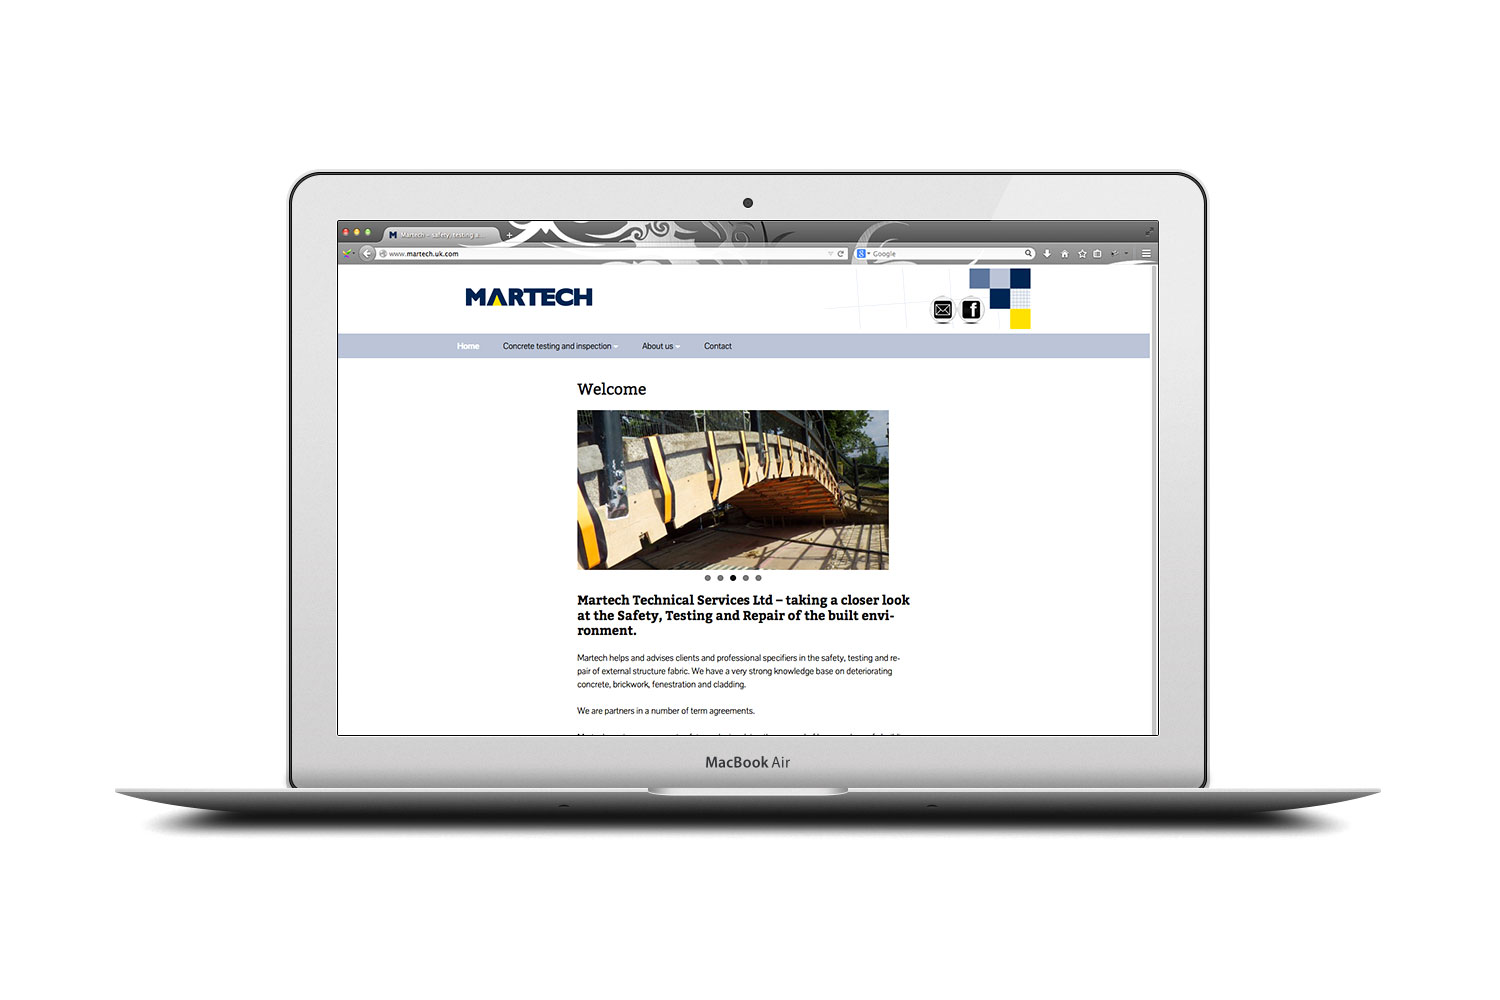 Martech Technical Services website from cornishrock in Cornwall, professional website designers